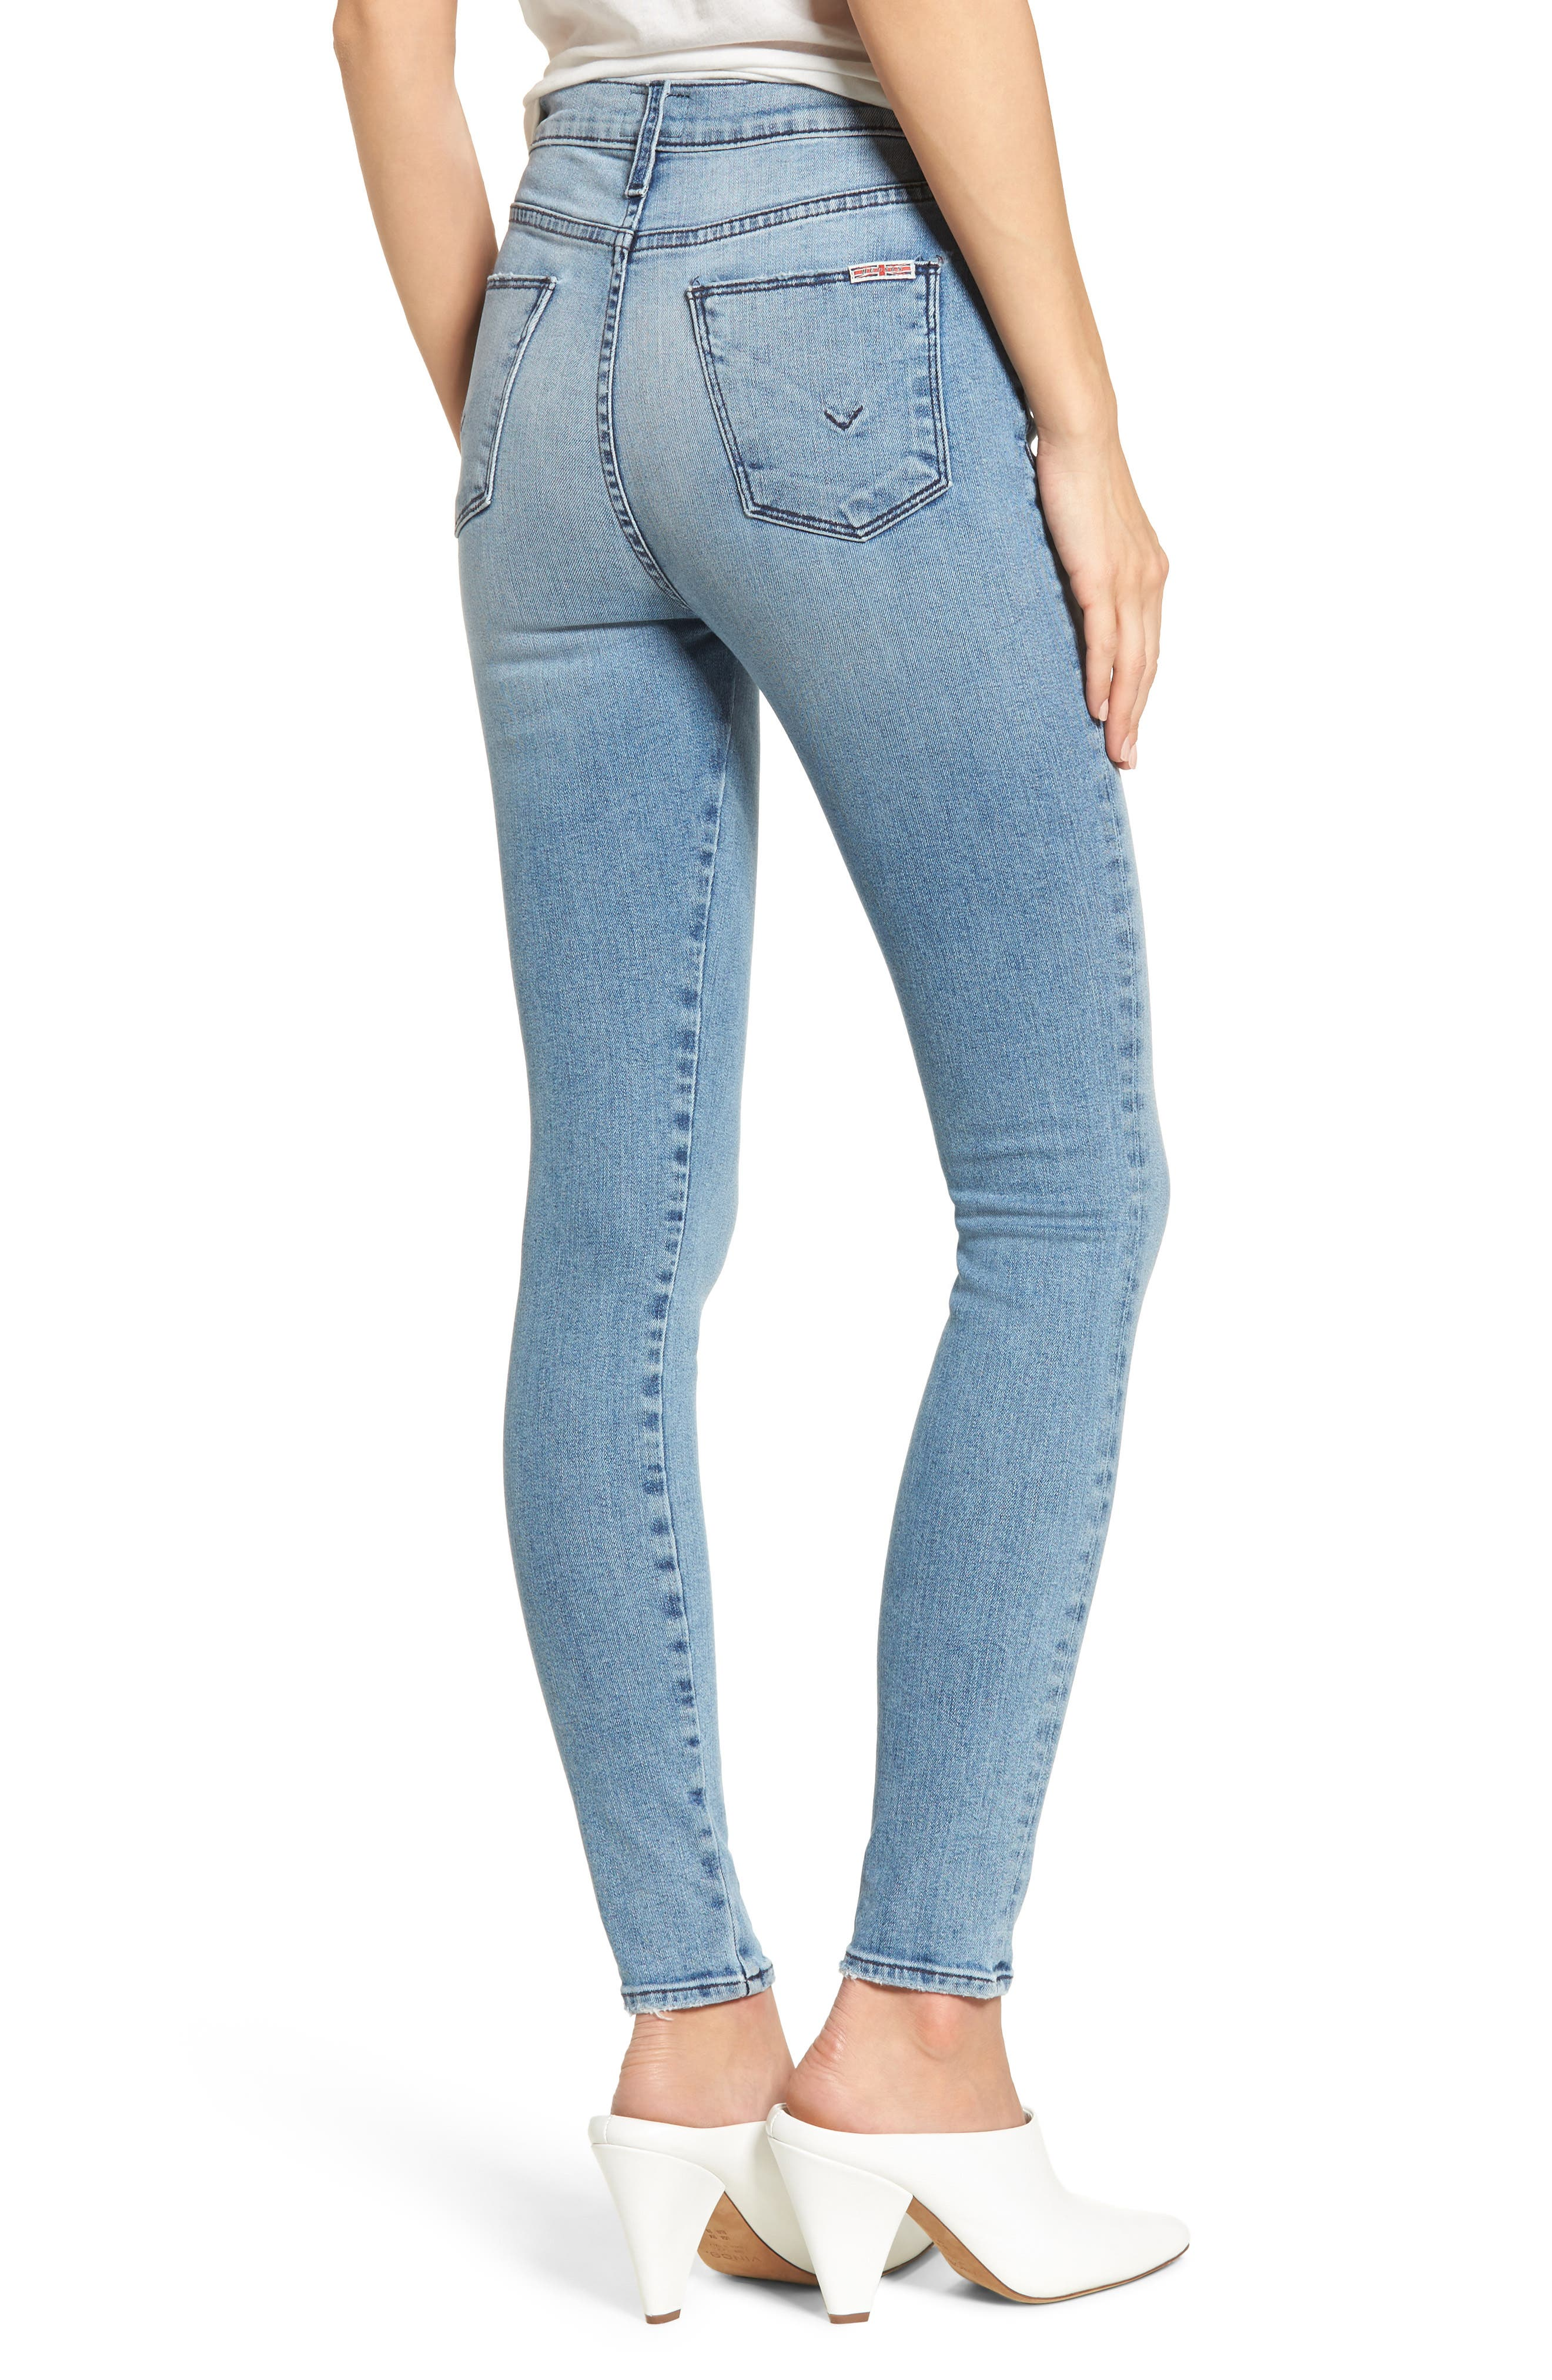 Bullocks Lace-Up High Waist Super Skinny Jeans,                             Alternate thumbnail 2, color,                             Guilty Pleasure